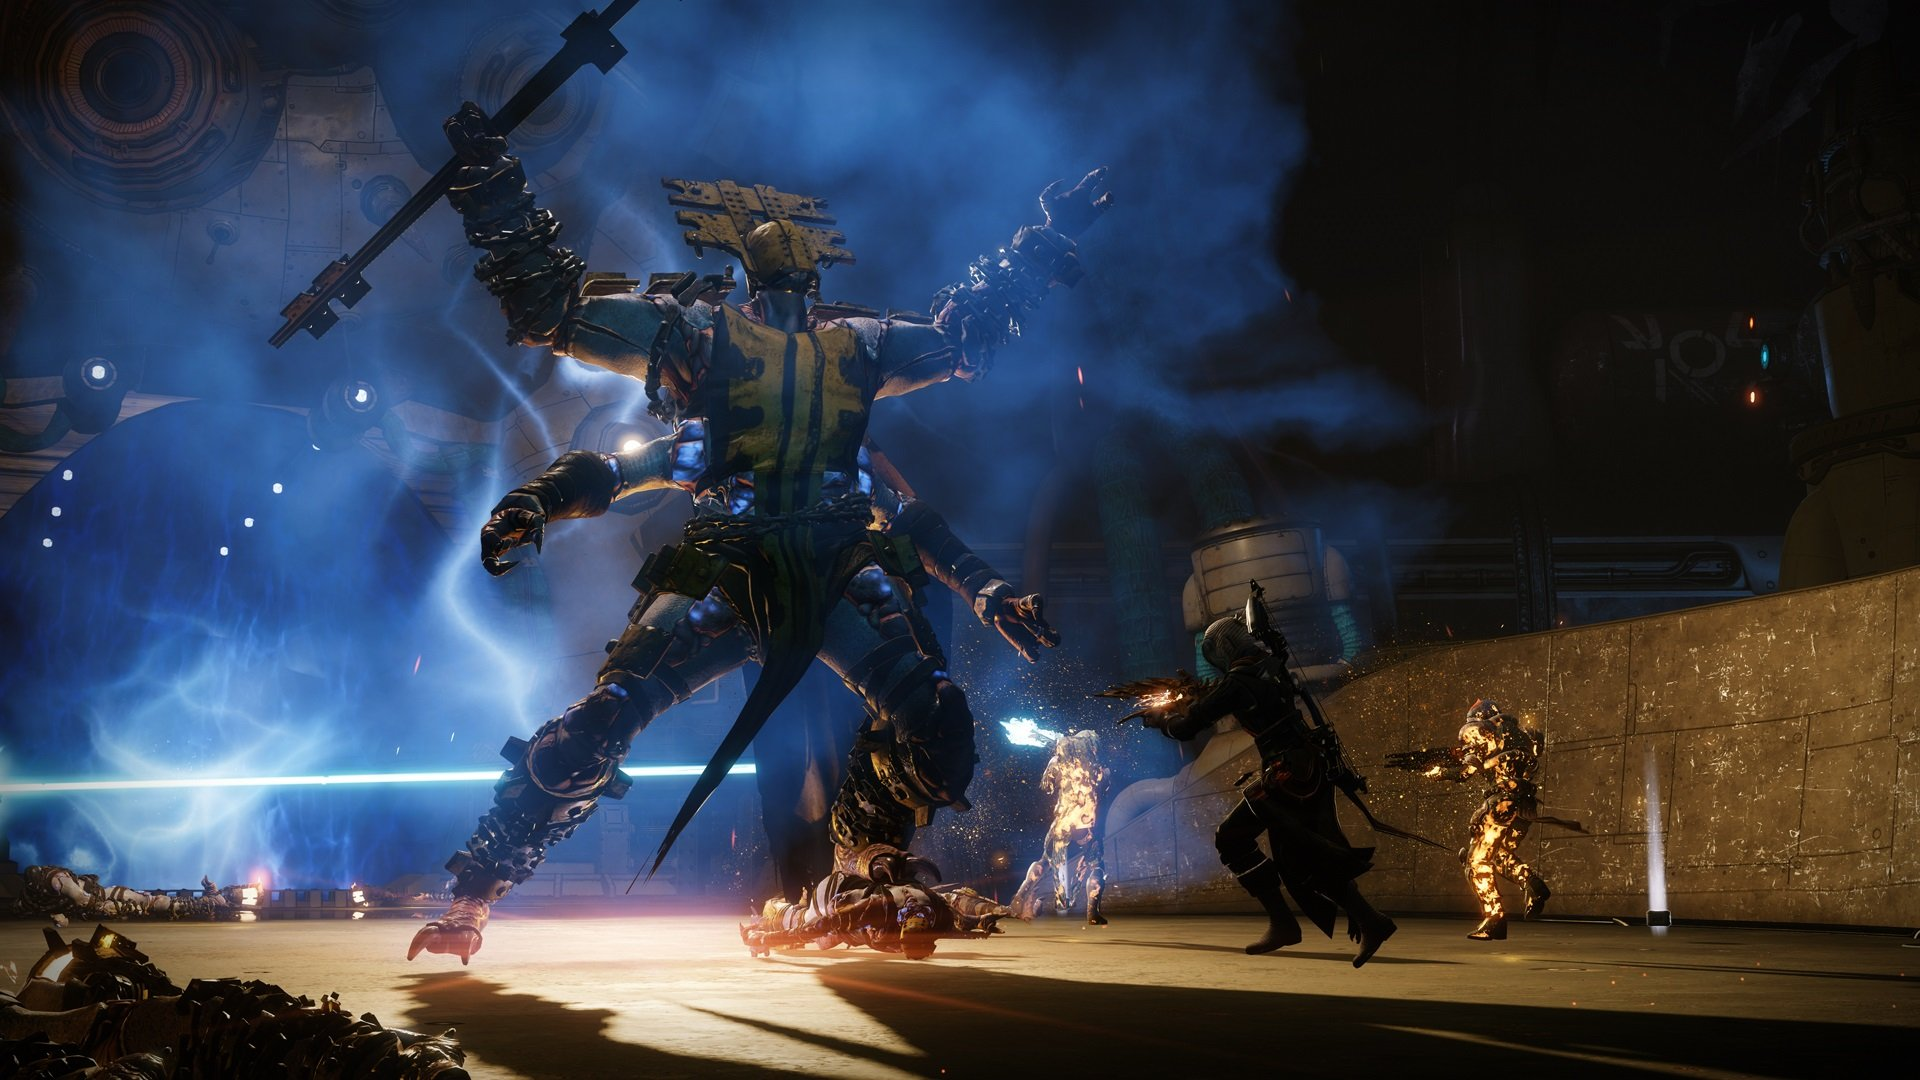 Destiny 2's Crown of Sorrow raid launches next month